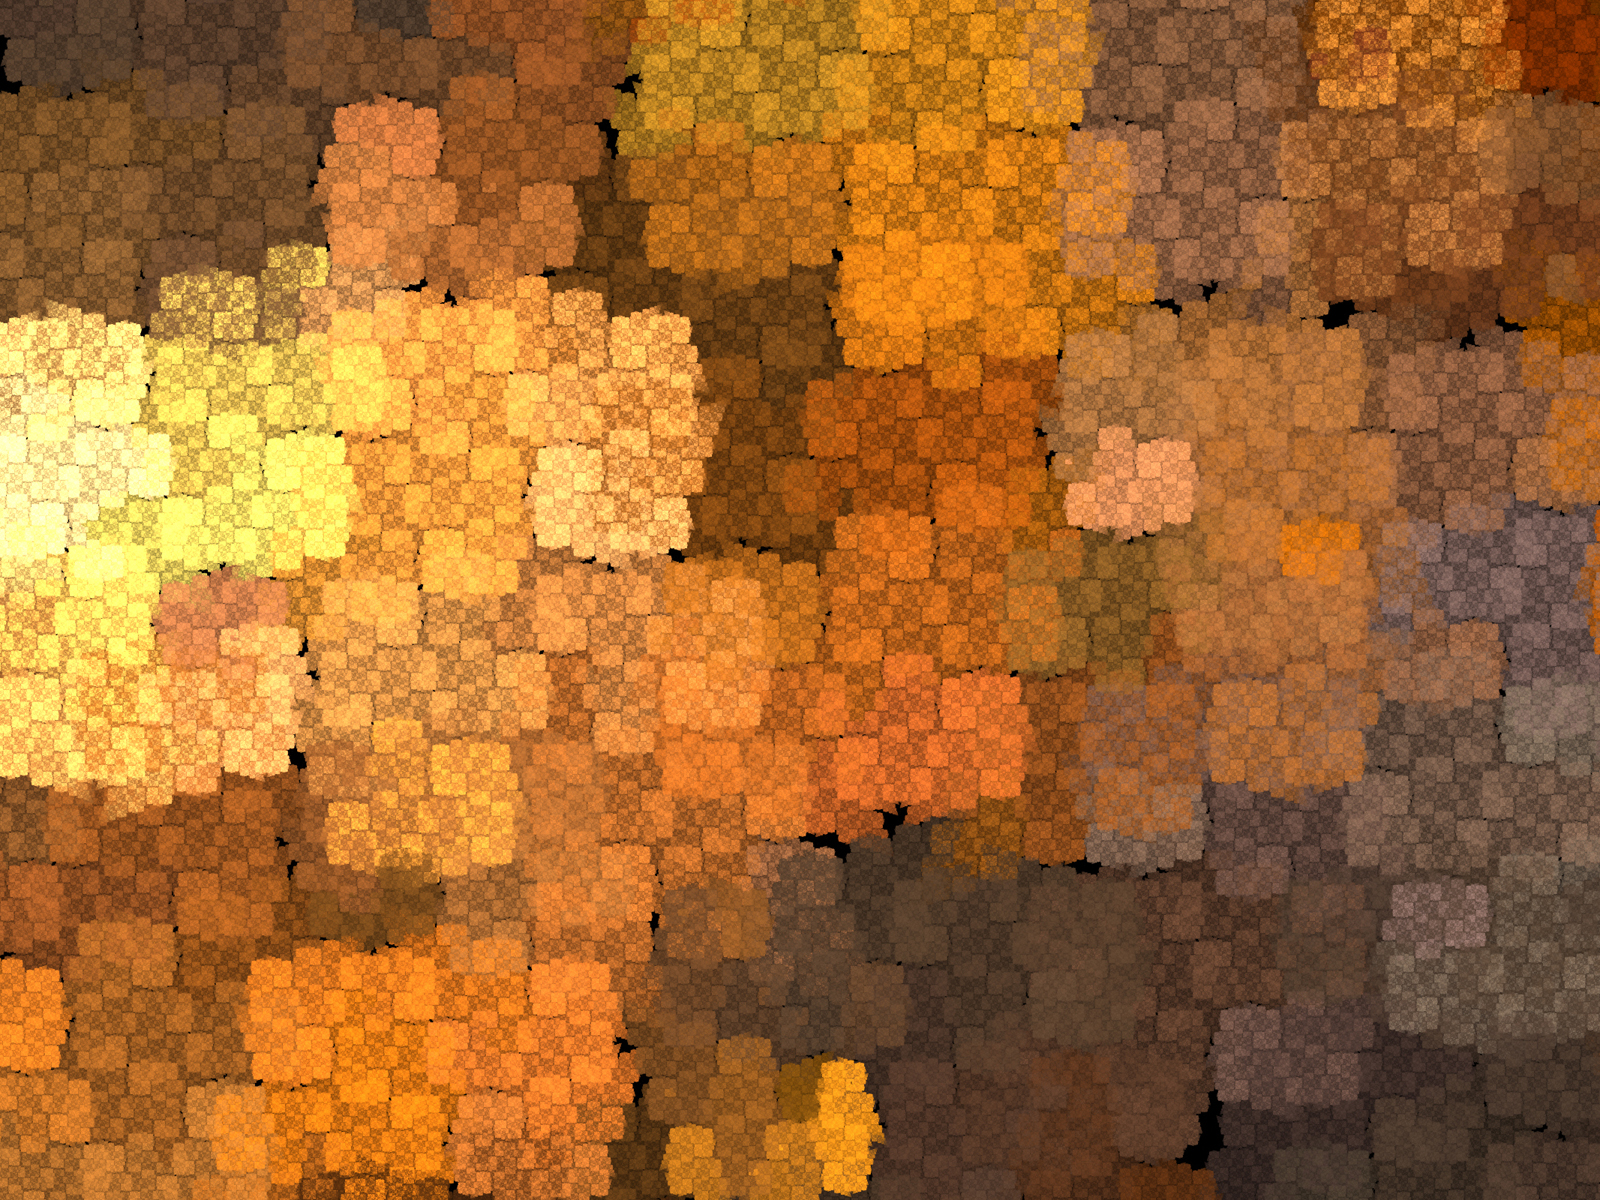 Copper Mosaic PPT Backgrounds for your PowerPoint Templates 1600x1200